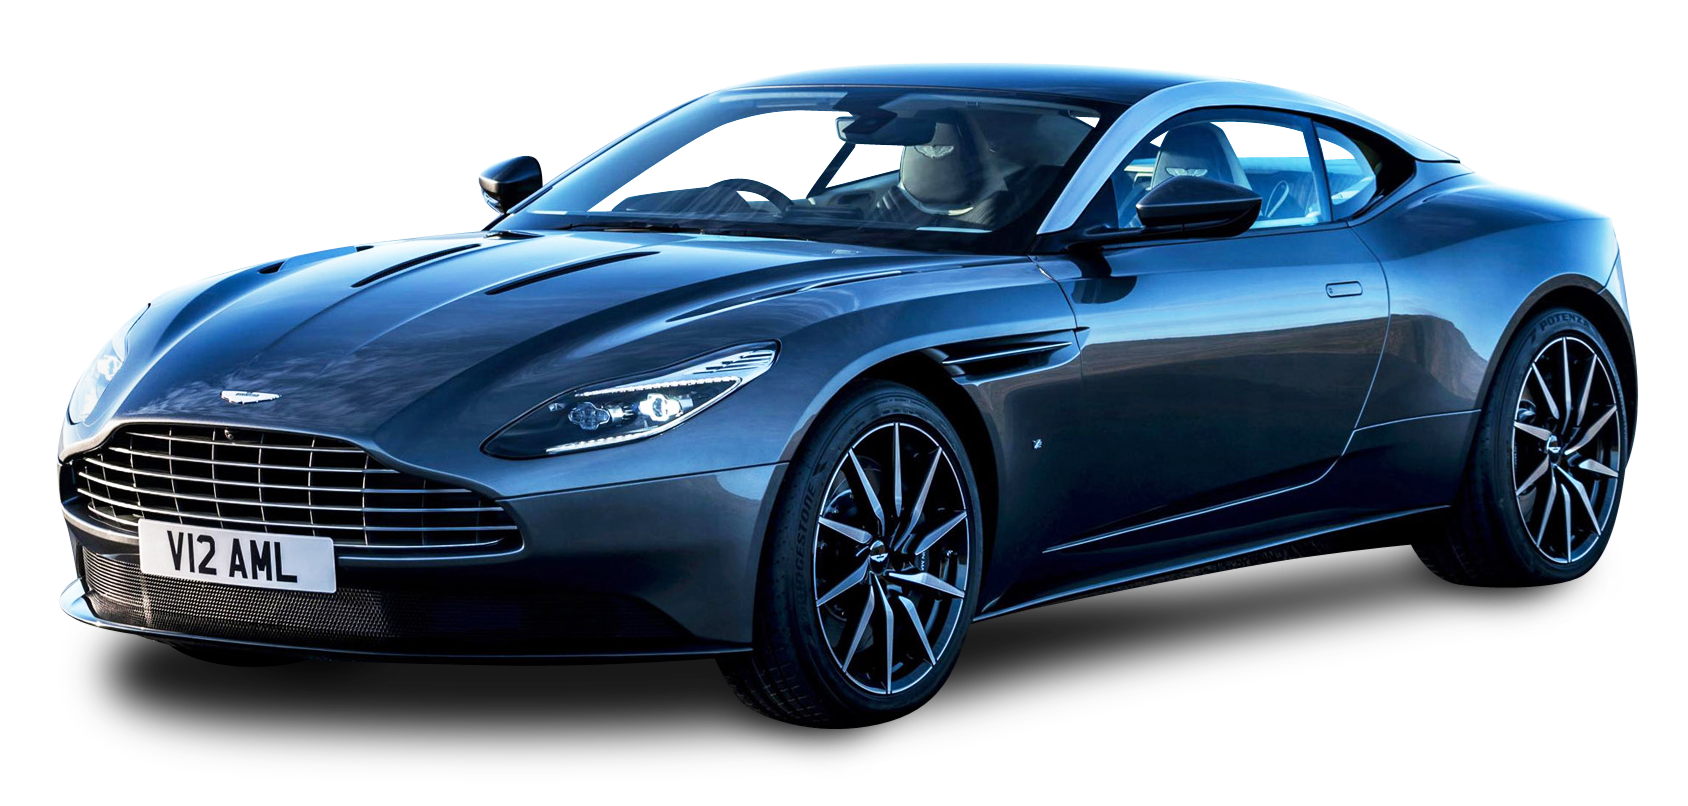 Download Aston Martin Db11 Blue Car Png Image For Free